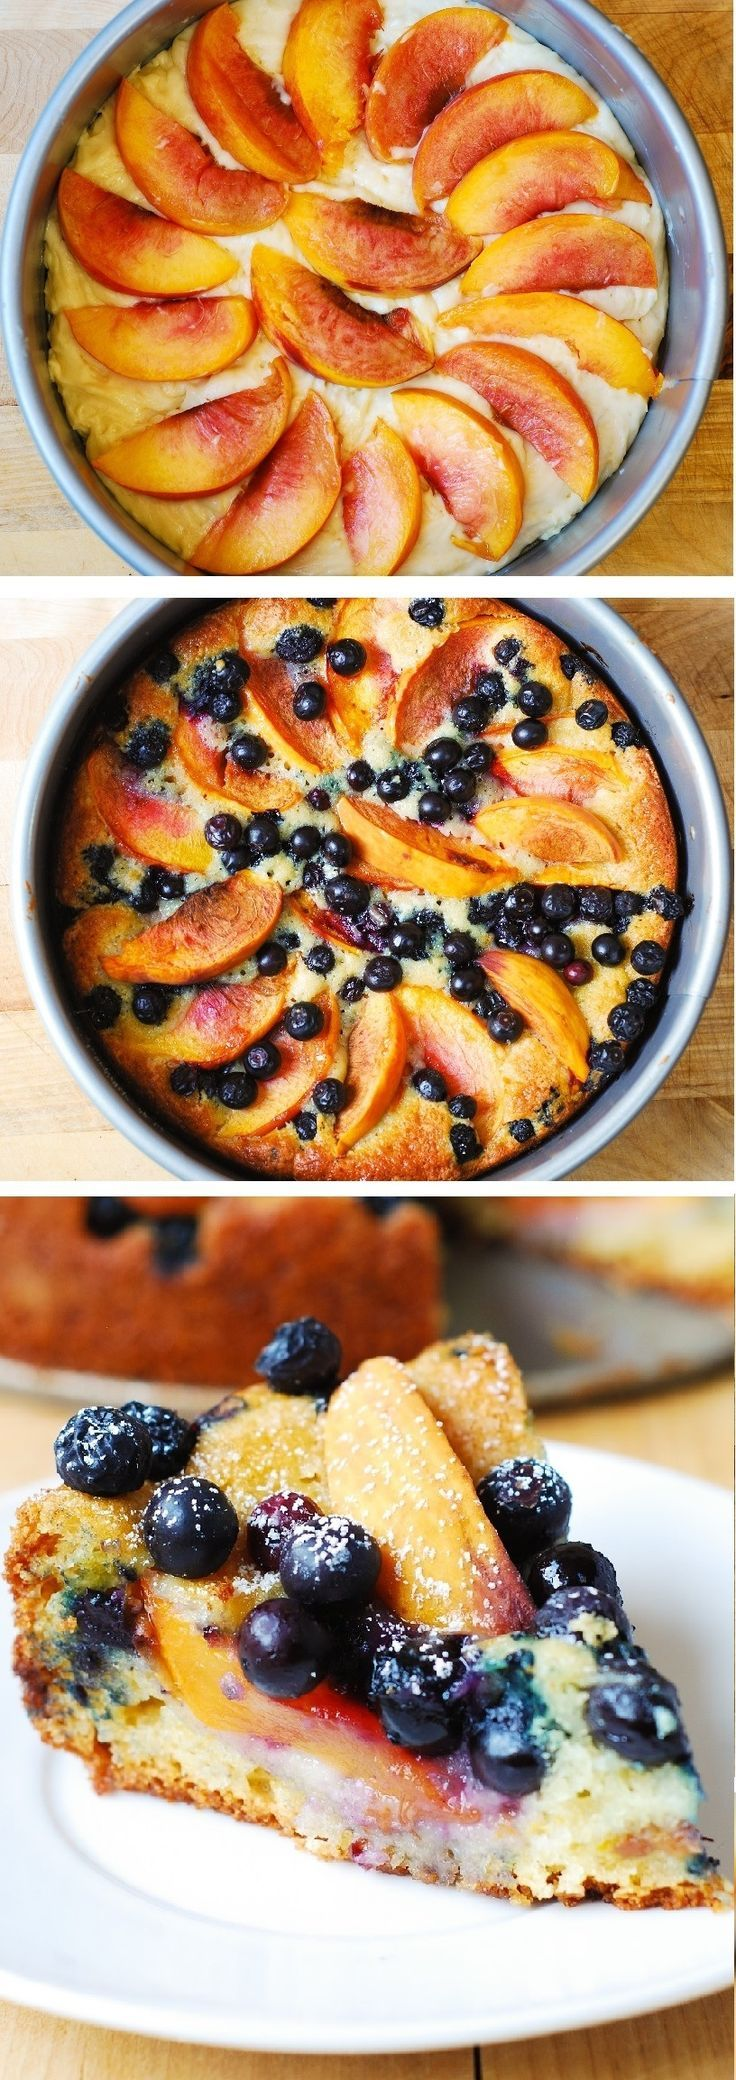 Delicious, light and fluffy Peach Blueberry Greek Yogurt Cake made in a springform baking pan. Greek yogurt gives cake a richer texture!  #berry_cake